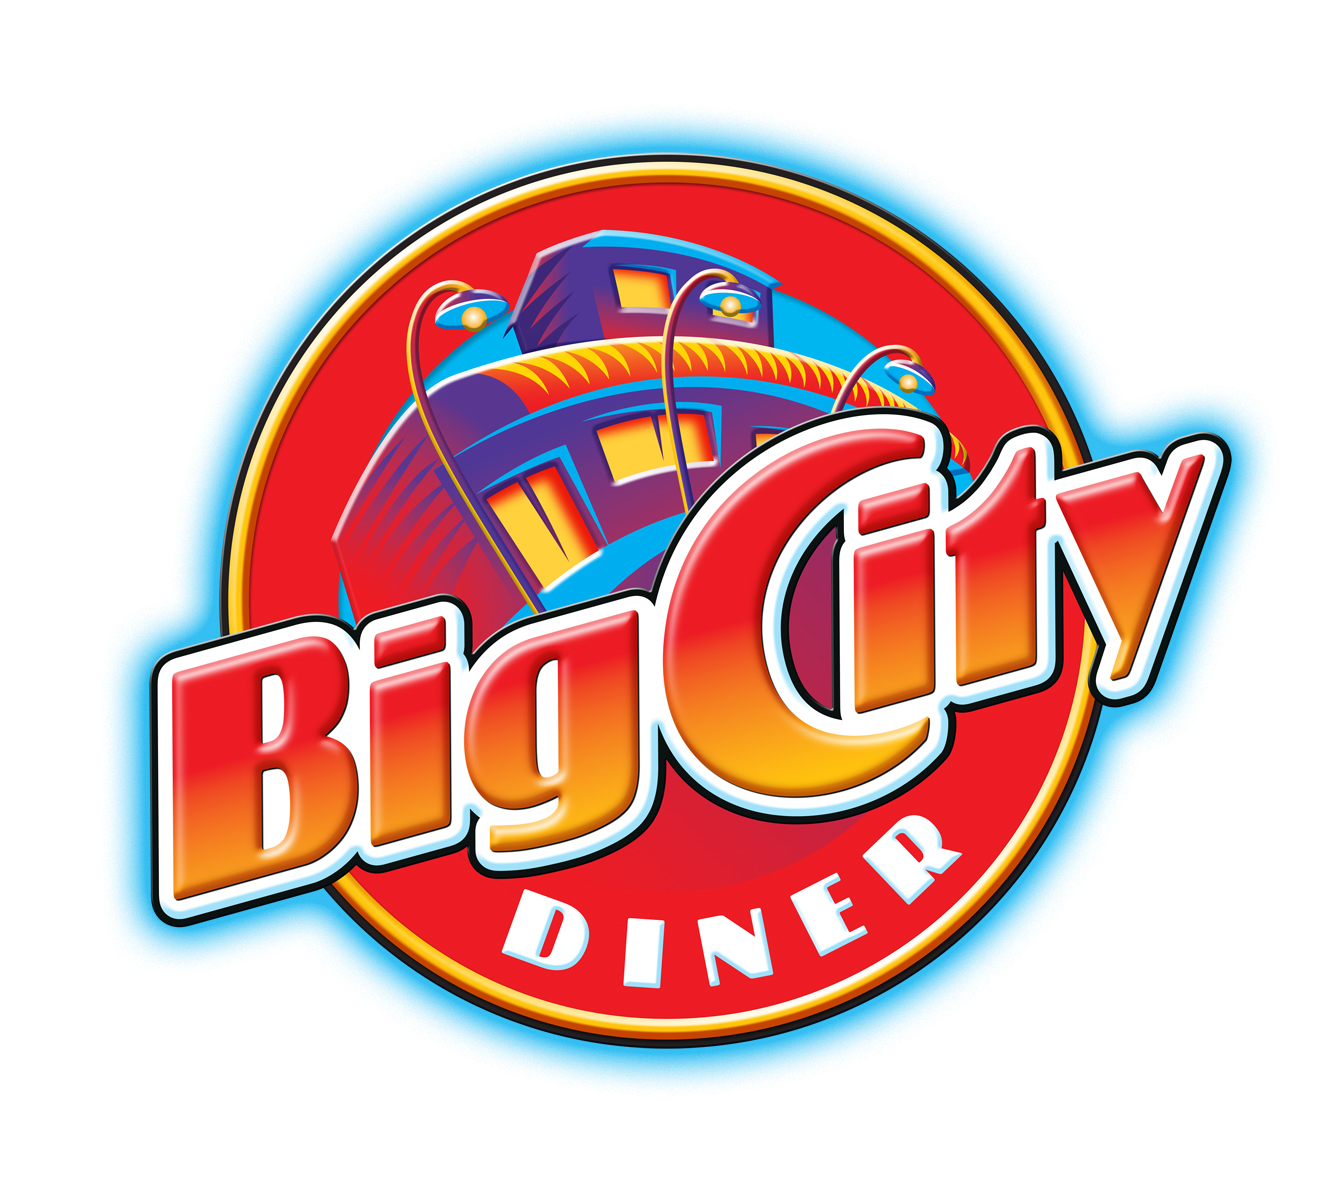 Big City Diner Shop